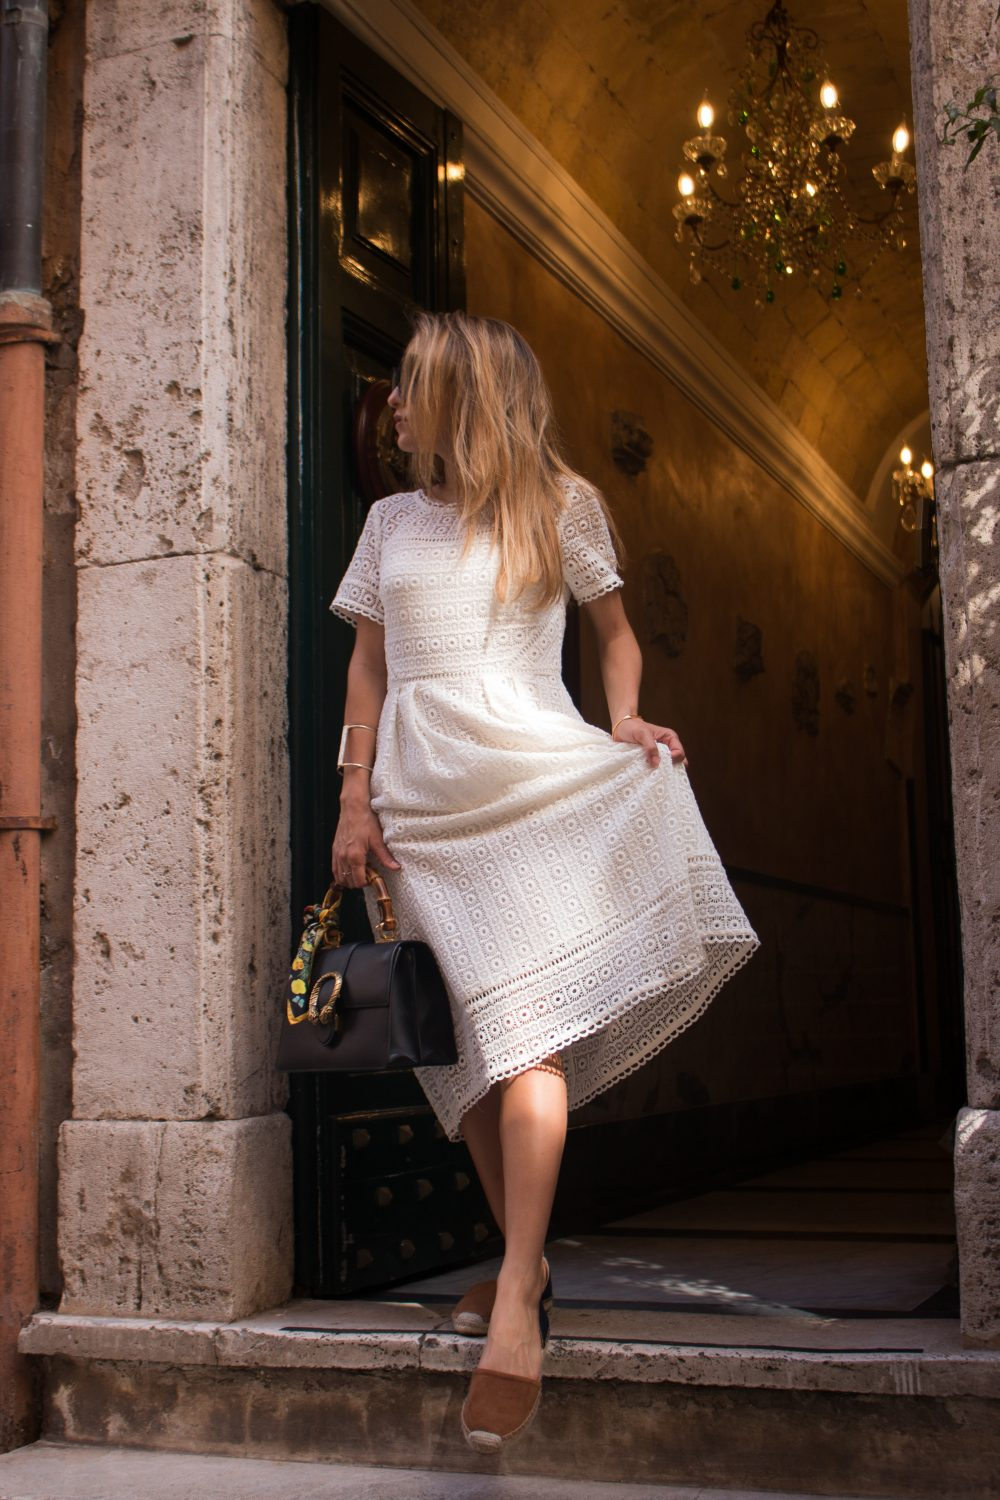 Whitney's Wonderland NYC Top Luxury Fashion Blogger wears Boden white lace midi dress, Boden espadrilles and Gucci dionysus bag in Rome